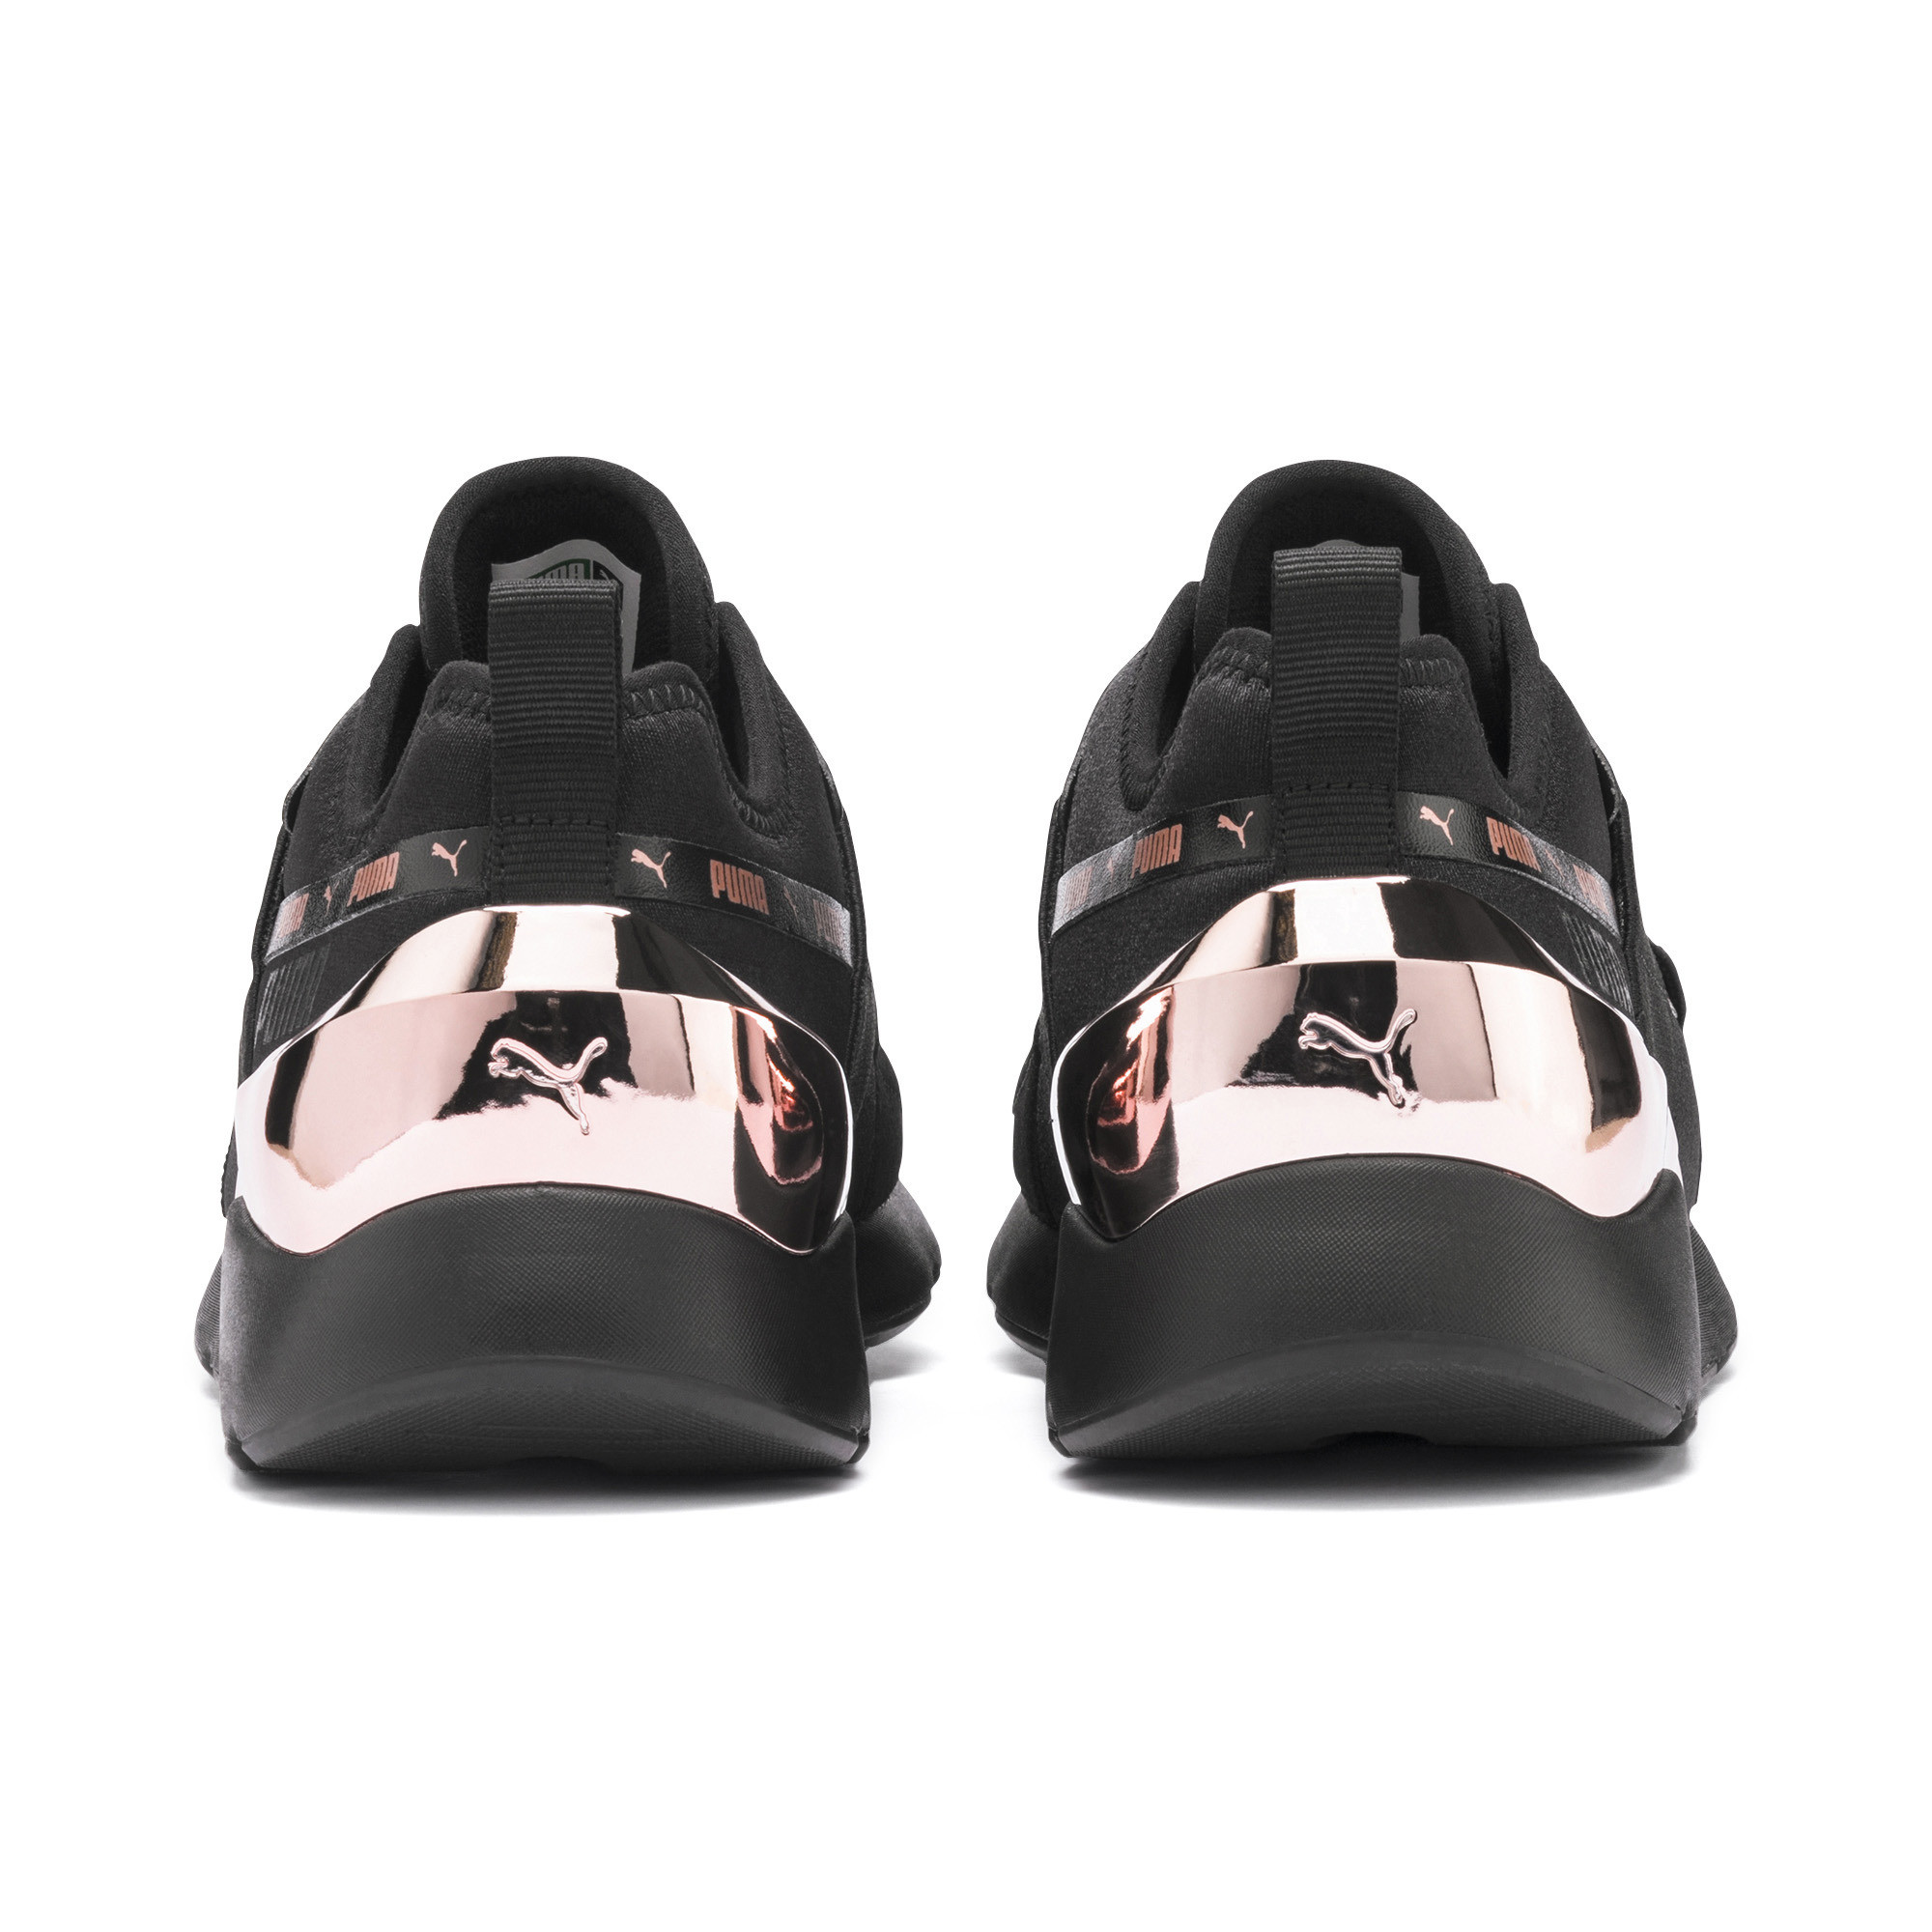 PUMA-Muse-X-2-Metallic-Women-039-s-Sneakers-Women-Shoe-Evolution thumbnail 17